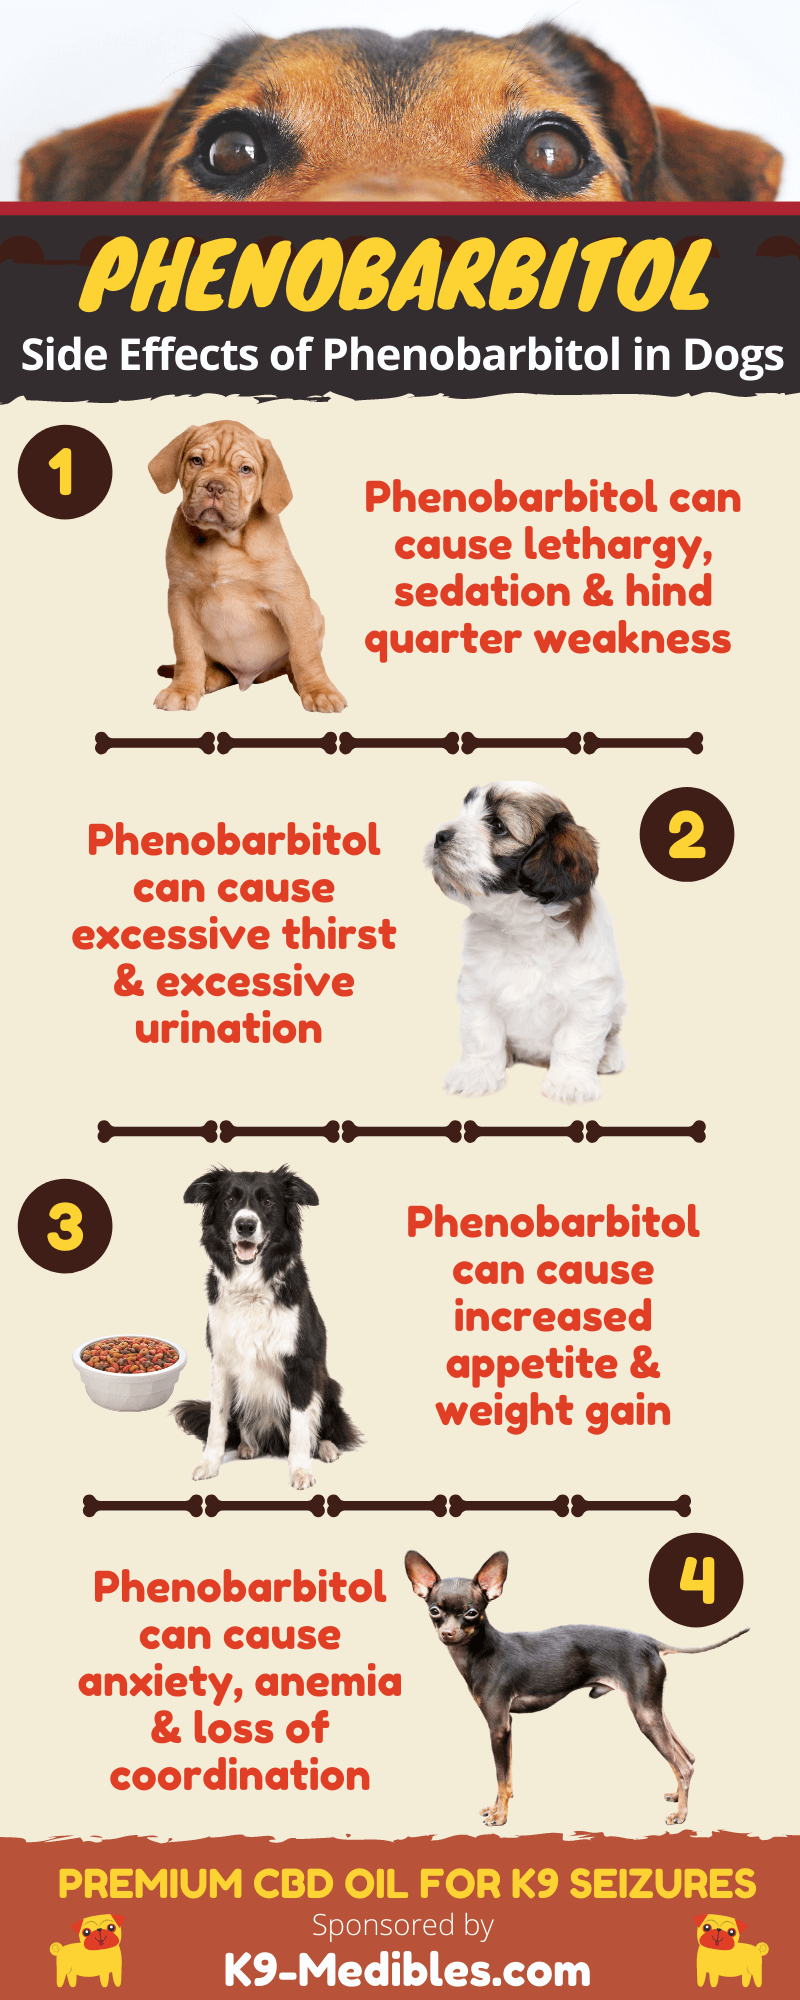 Phenobarbitol for dogs [INFOGRAPHIC] Side effects of phenobarbitol in dogs.